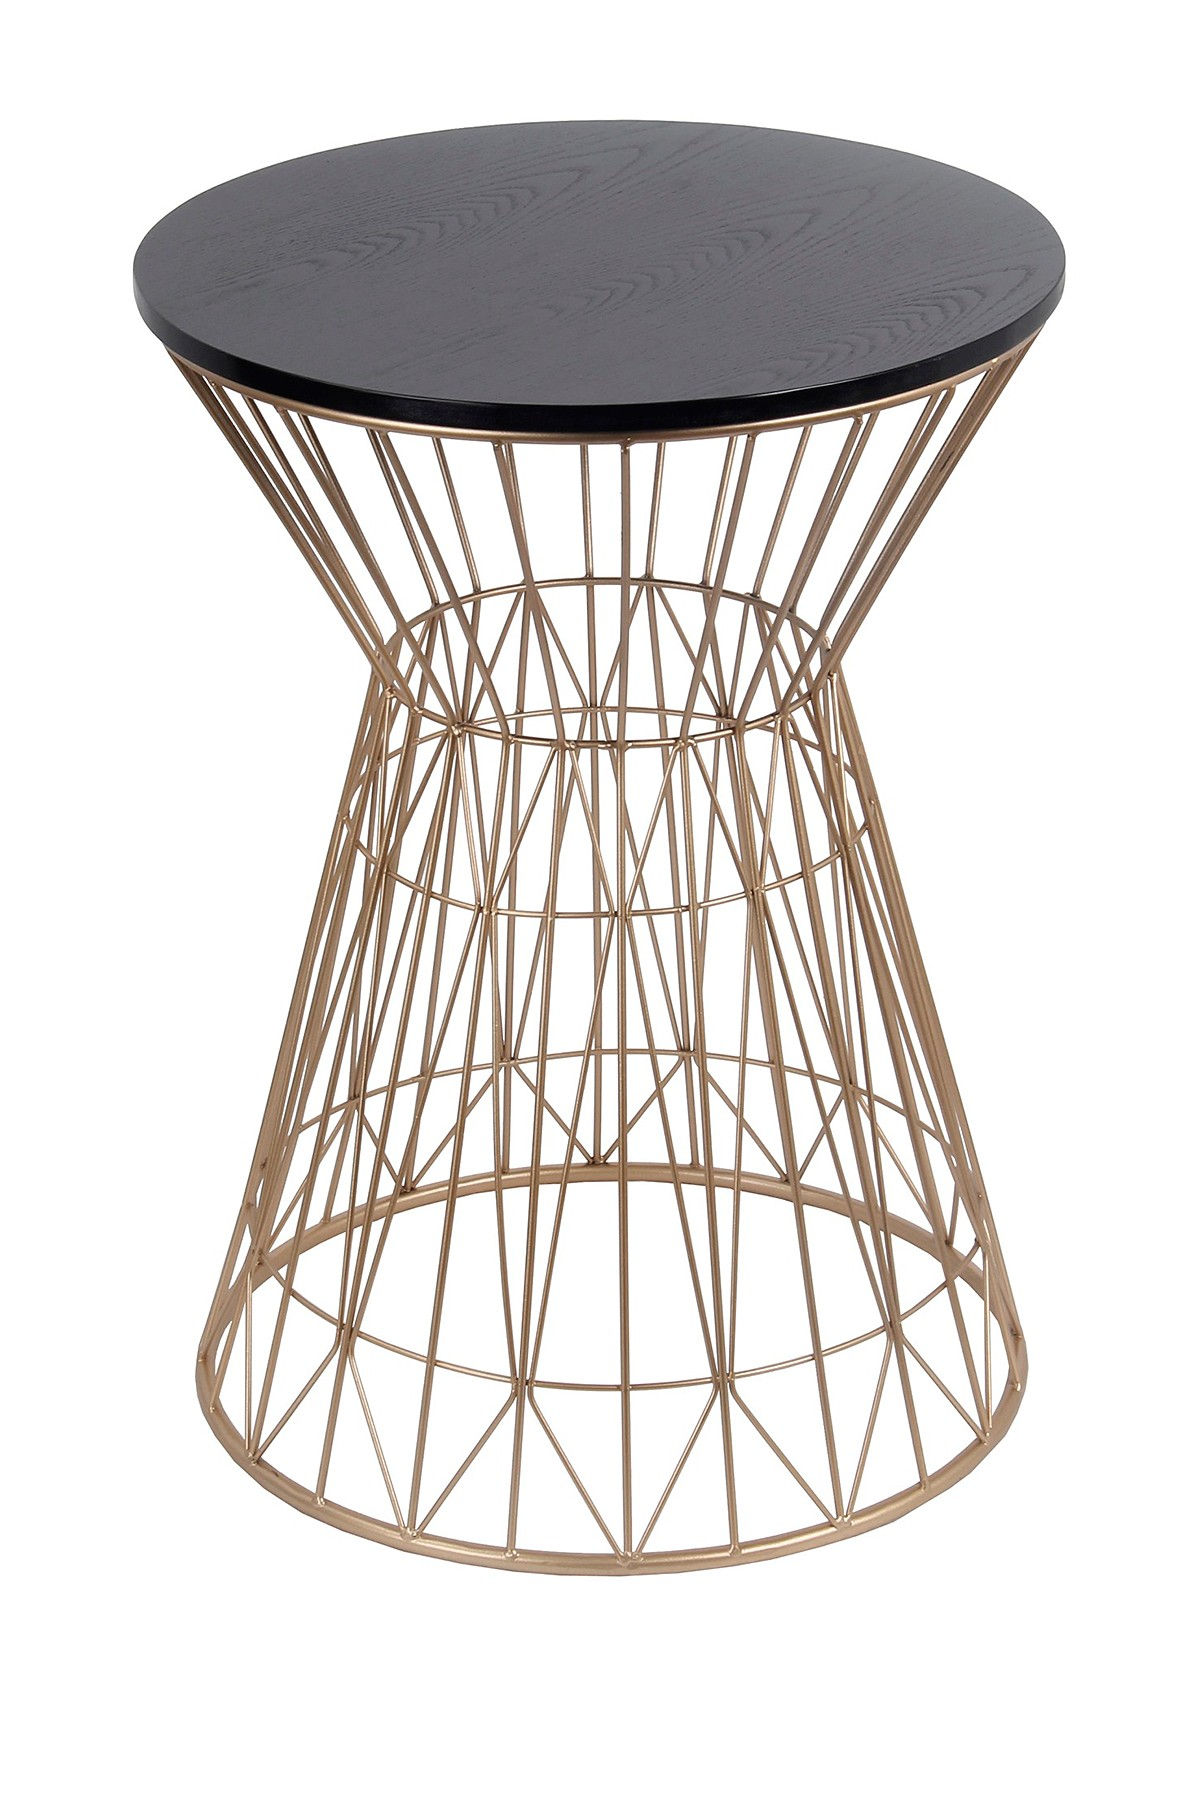 privilege home decor black gold accent table nordstrom rack simple quilted runner patterns wall clock design small half circle quatrefoil wood counter height console entrance